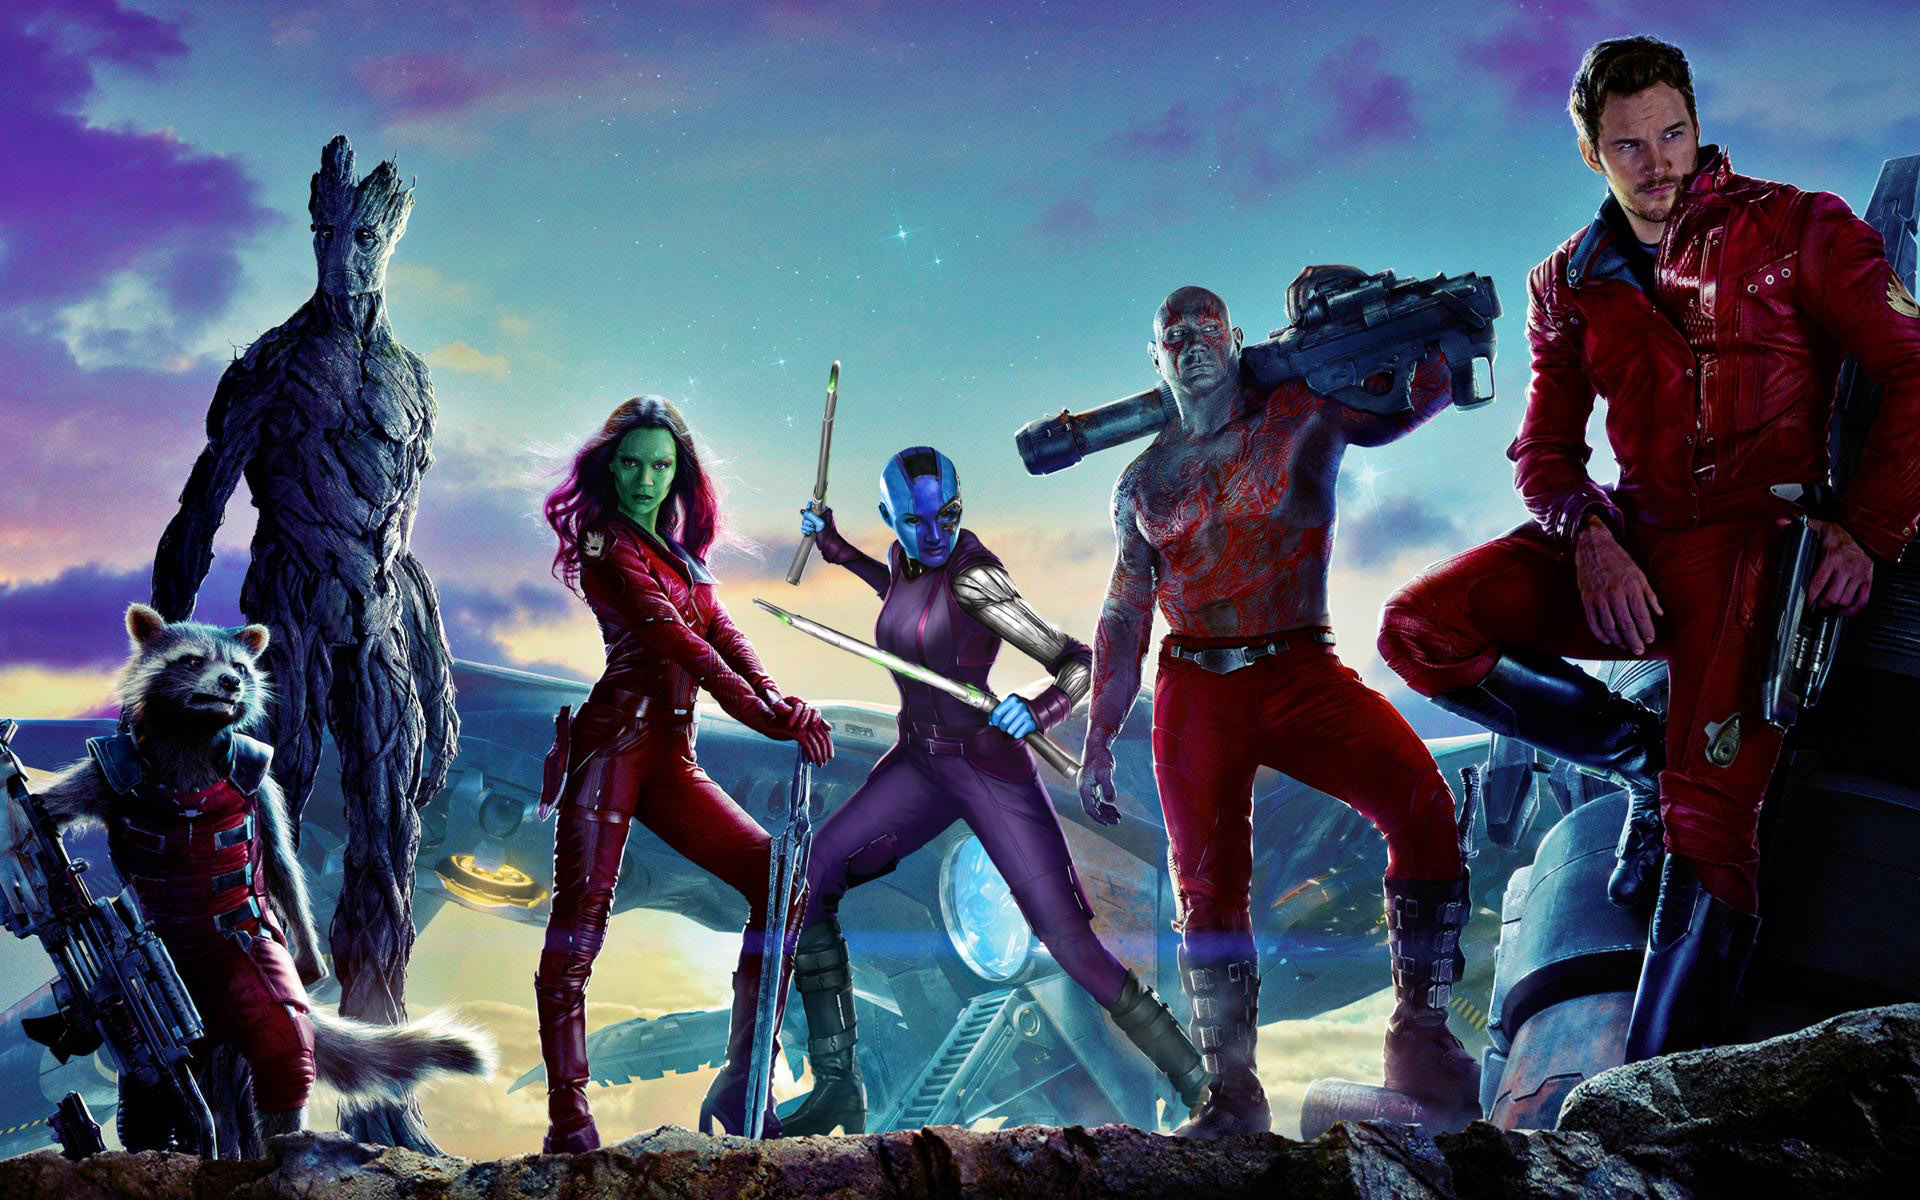 https://cinemaplanet.pt/wp-content/uploads/2017/04/Guardians-of-the-Galaxy-Wallpaper-Roster-Nebula.jpg